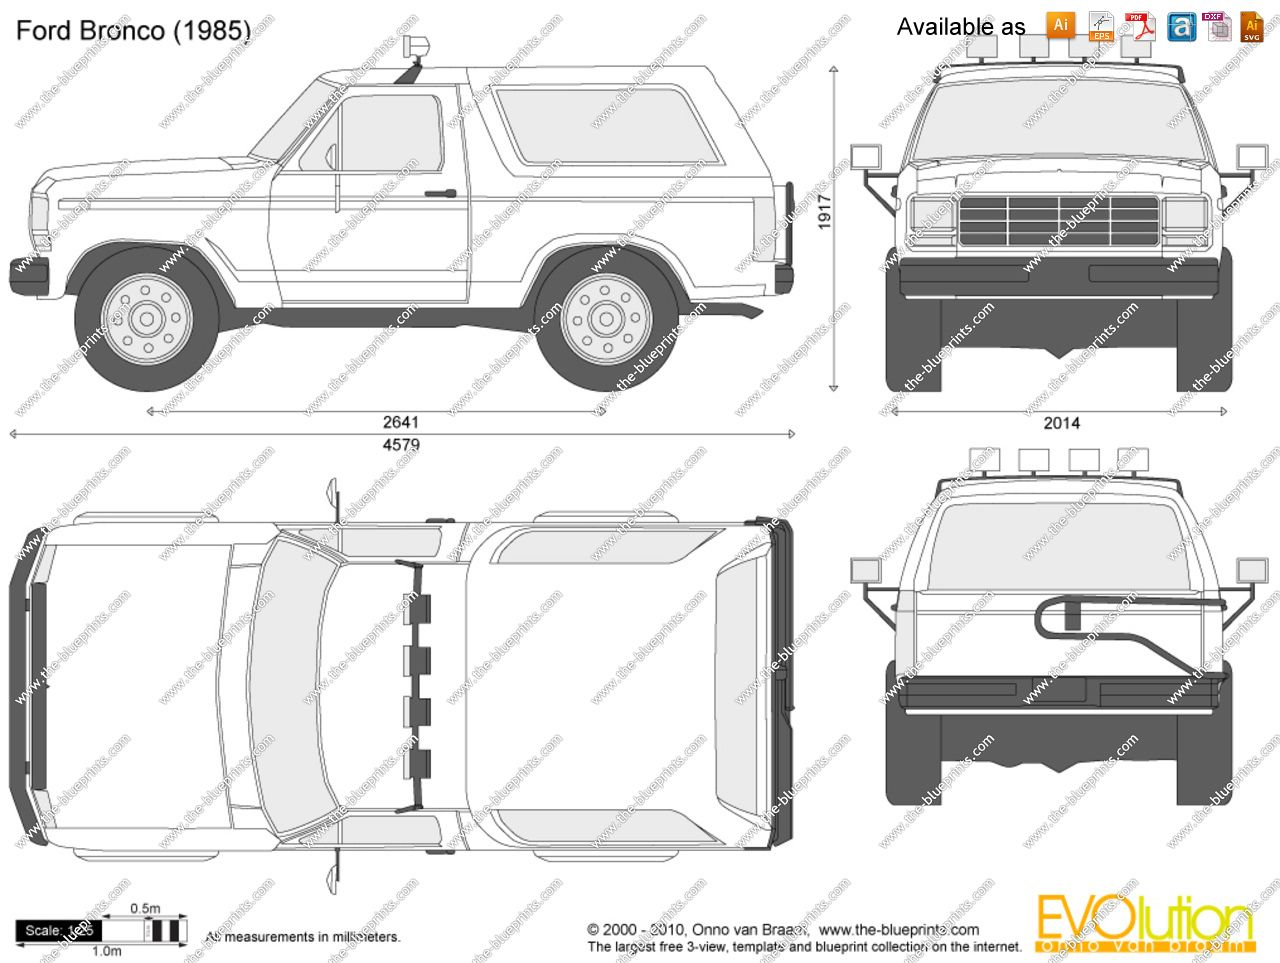 1985 ford bronco blueprints google search cars pinterest 1985 ford bronco blueprints google search malvernweather Choice Image